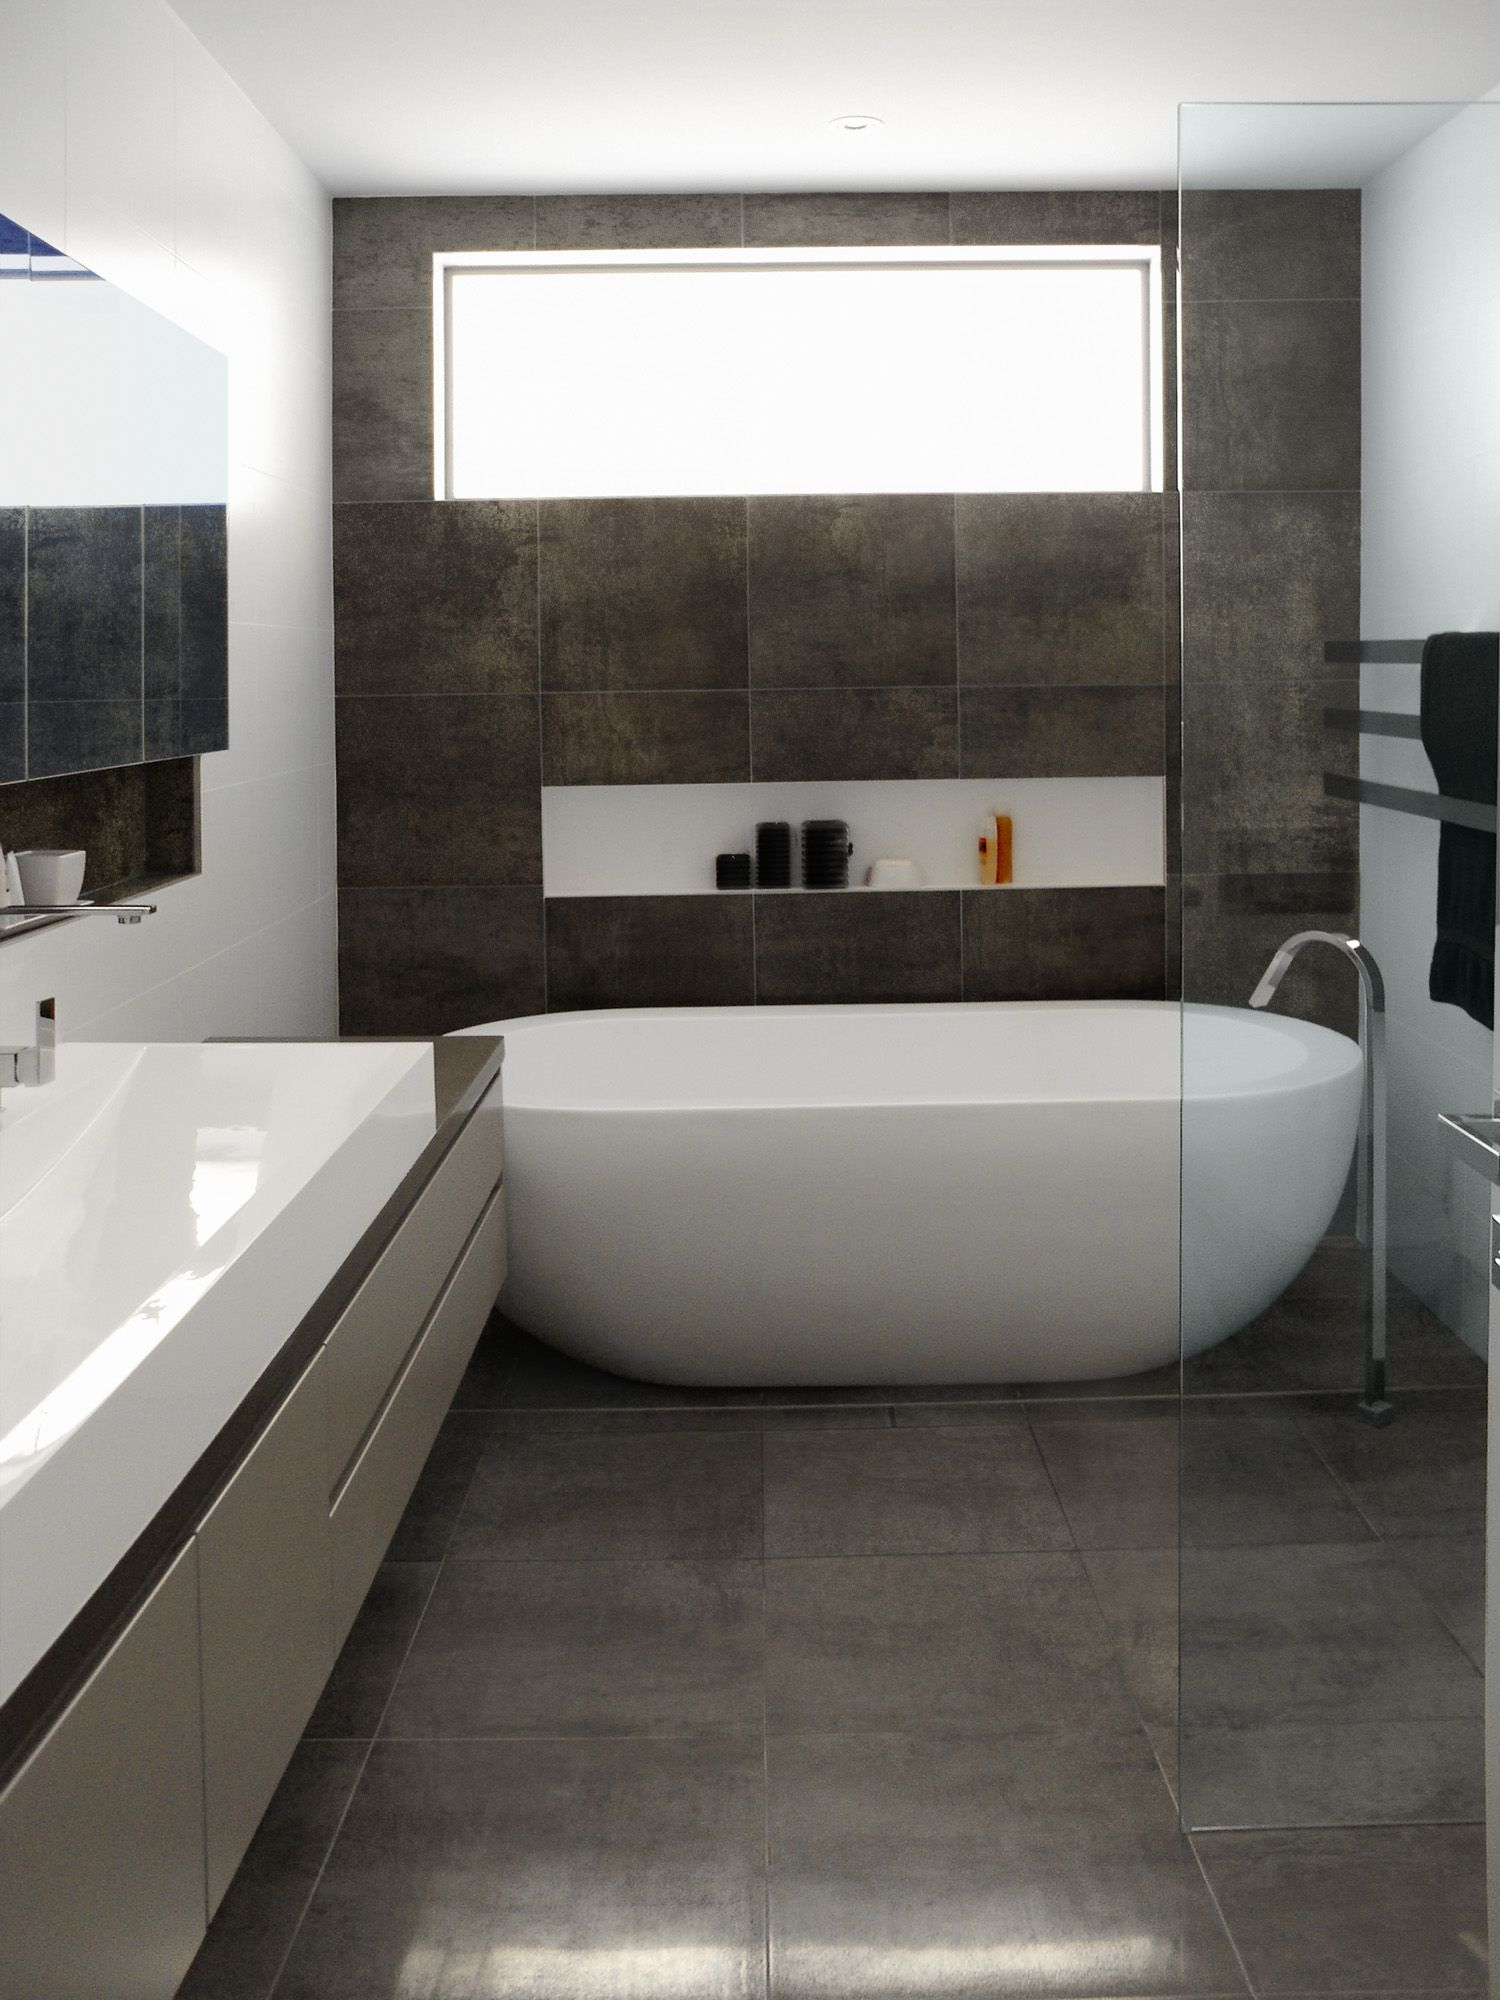 Grey Floor Tiles Bathroom Nice Oval Freestanding Soaker Bathtubs On Grey Tile Floors